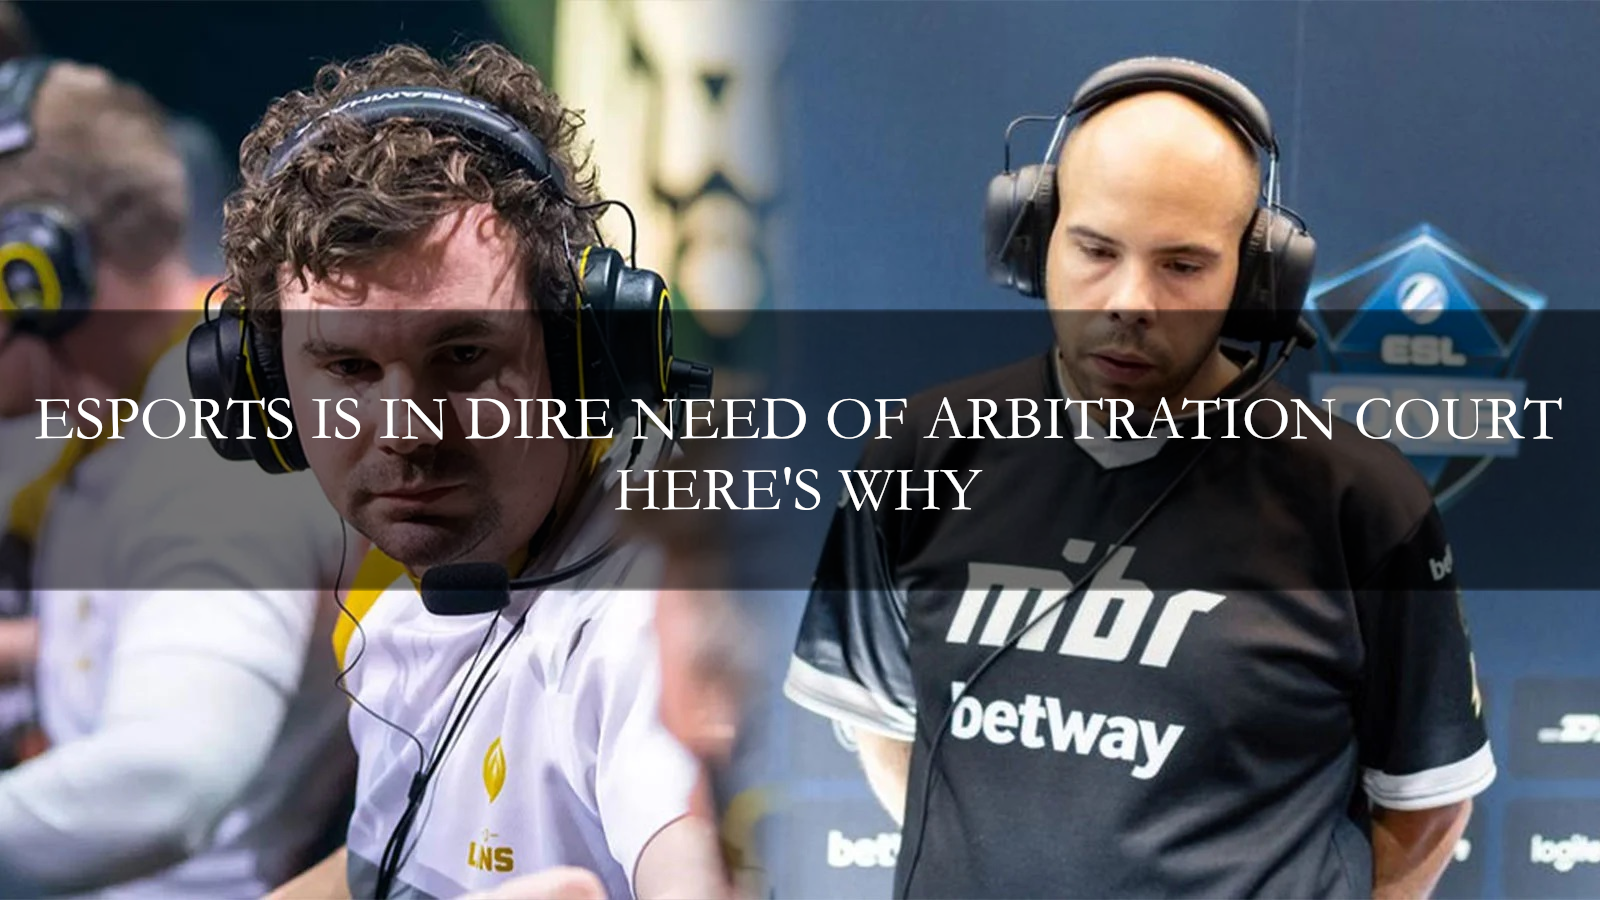 Esports is in a dire need of arbitration court – here's why